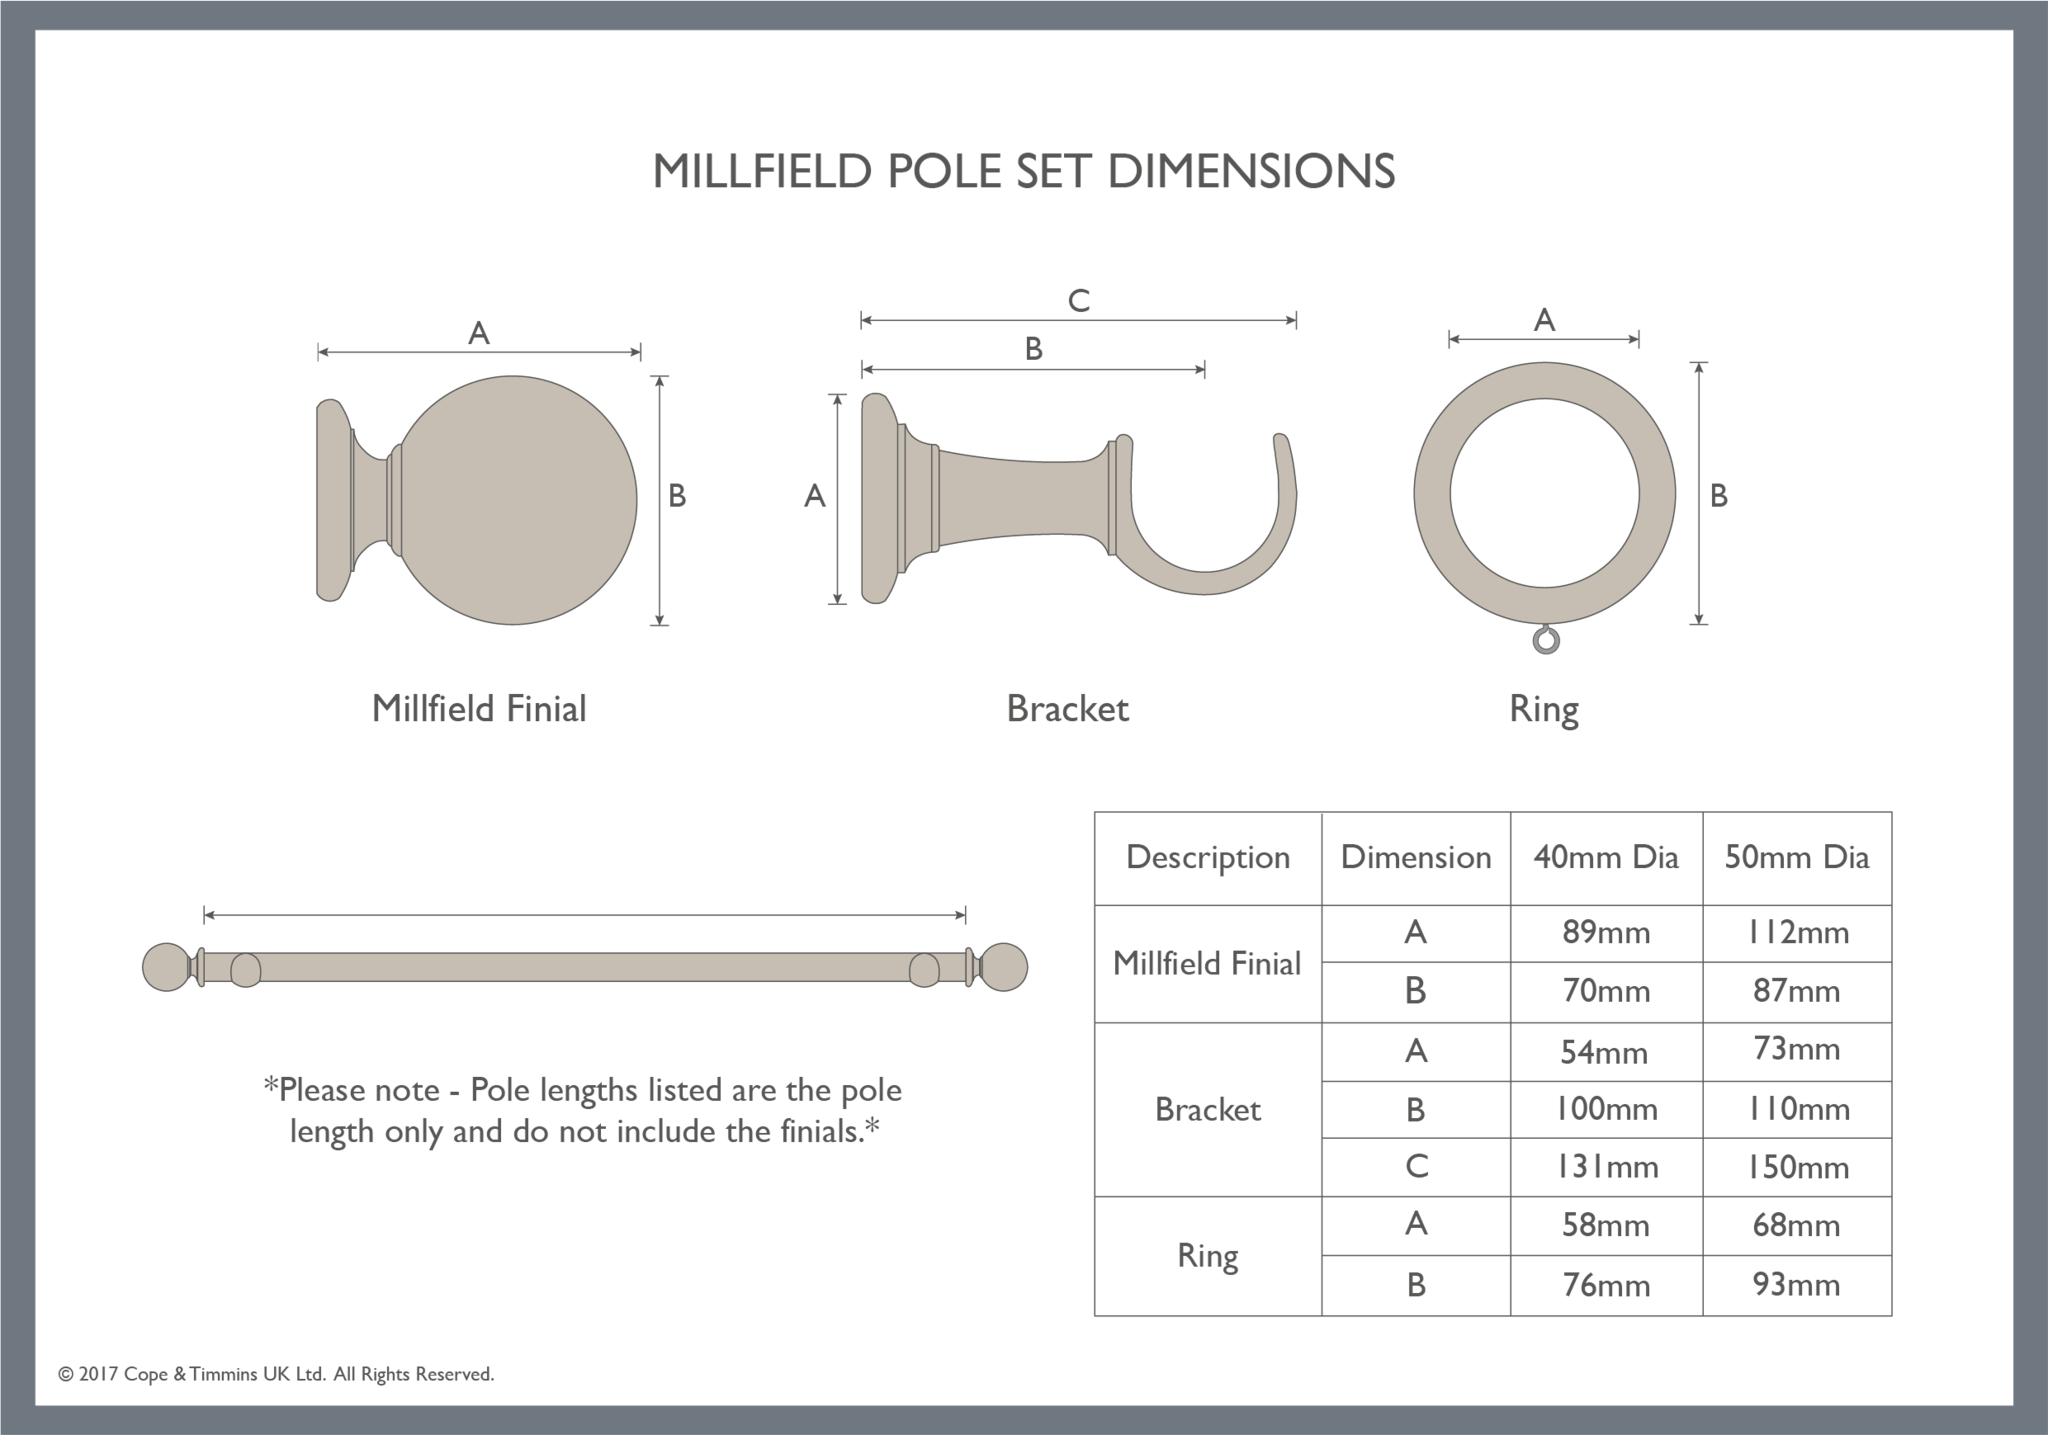 Dimensions of the Millfield curtain pole set components